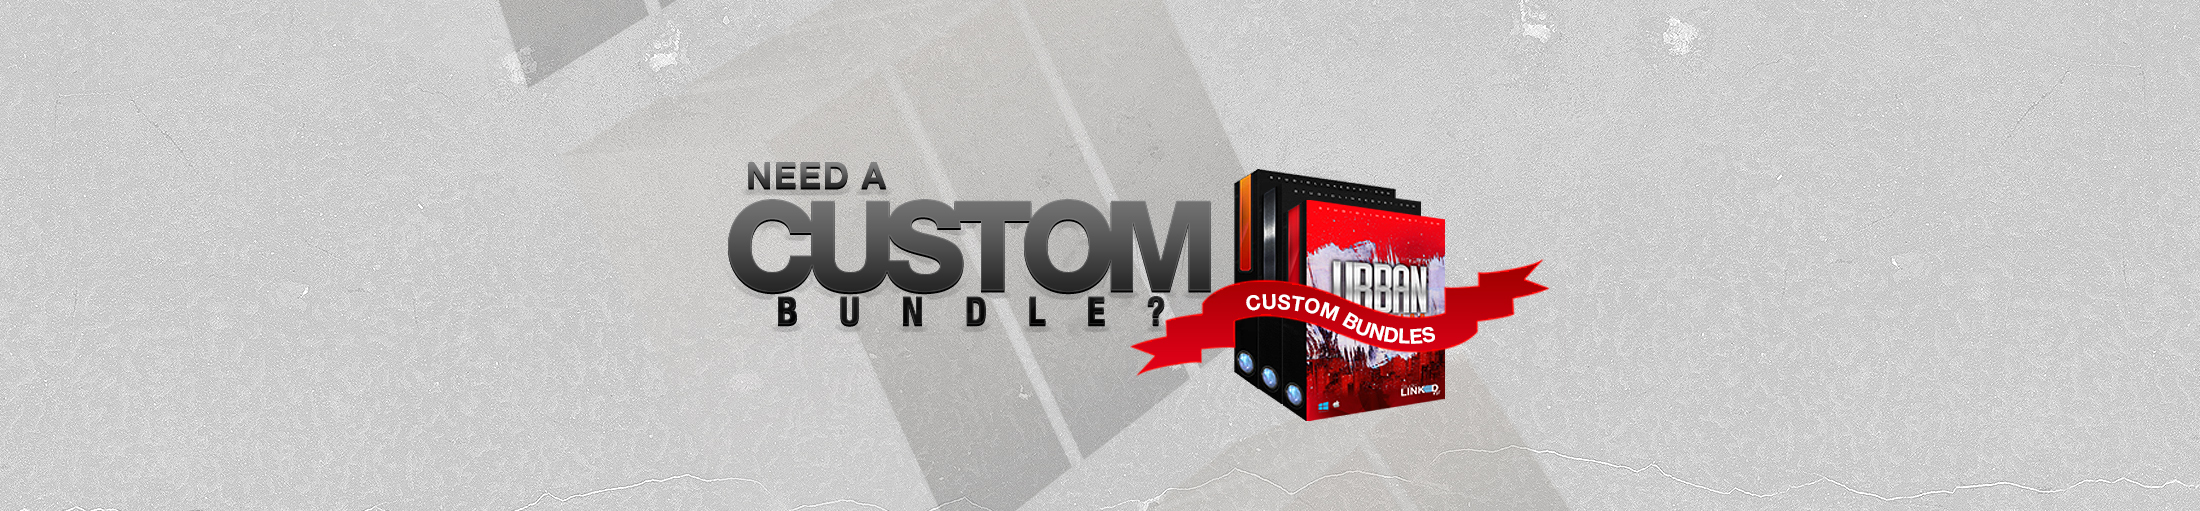 Custom-bundles-Slide